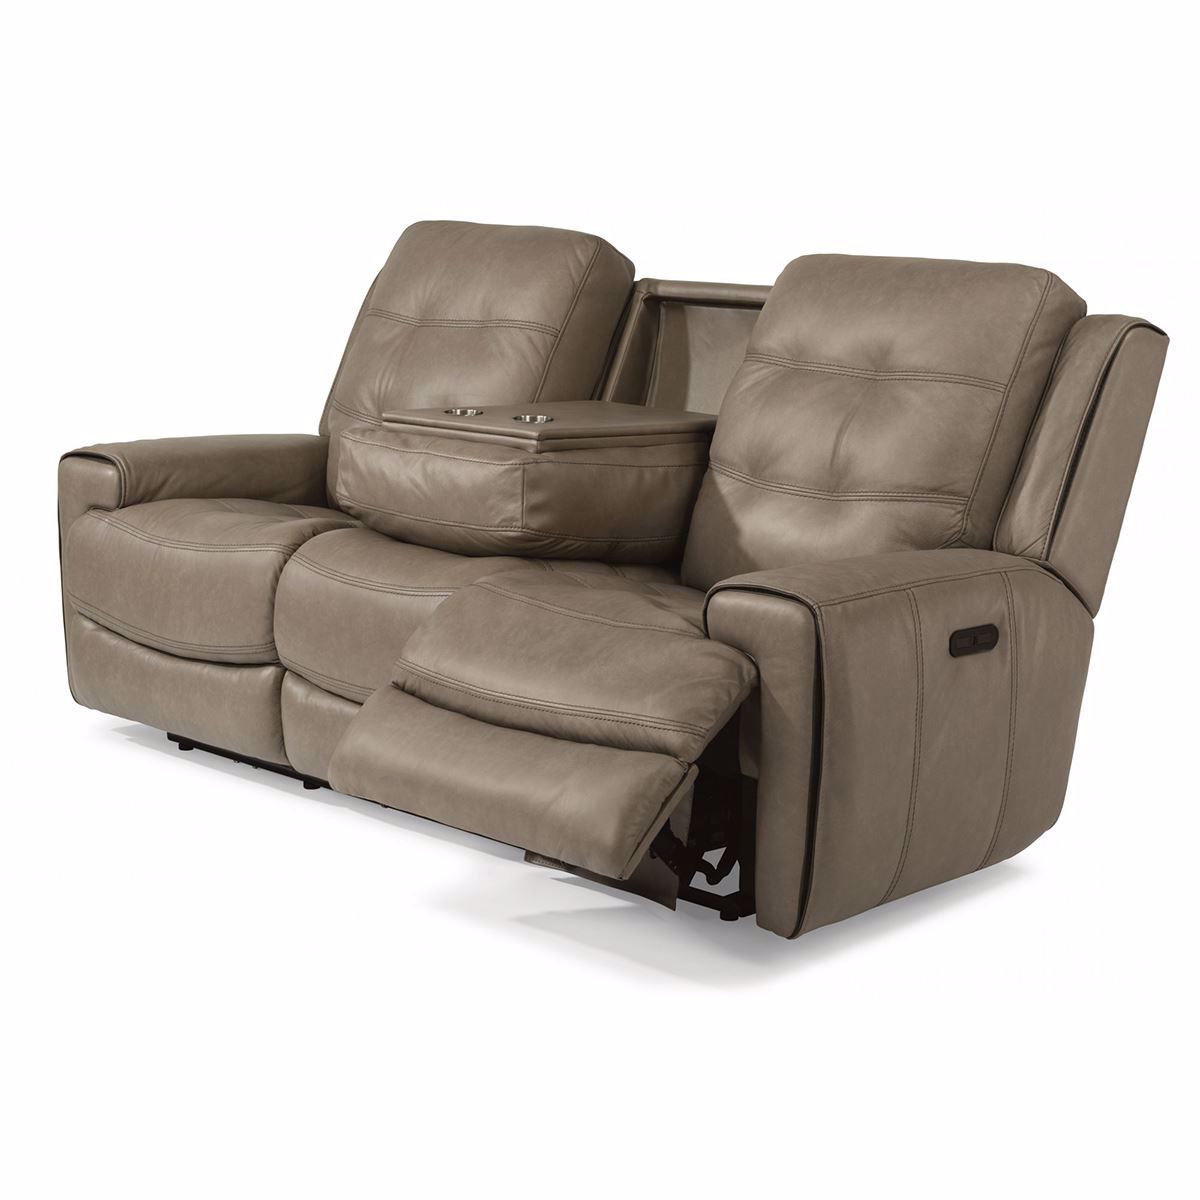 Wicklow Power Reclining Leather Sofa With Power Headrest Throughout Most Recent Charleston Power Reclining Sofas (View 1 of 20)